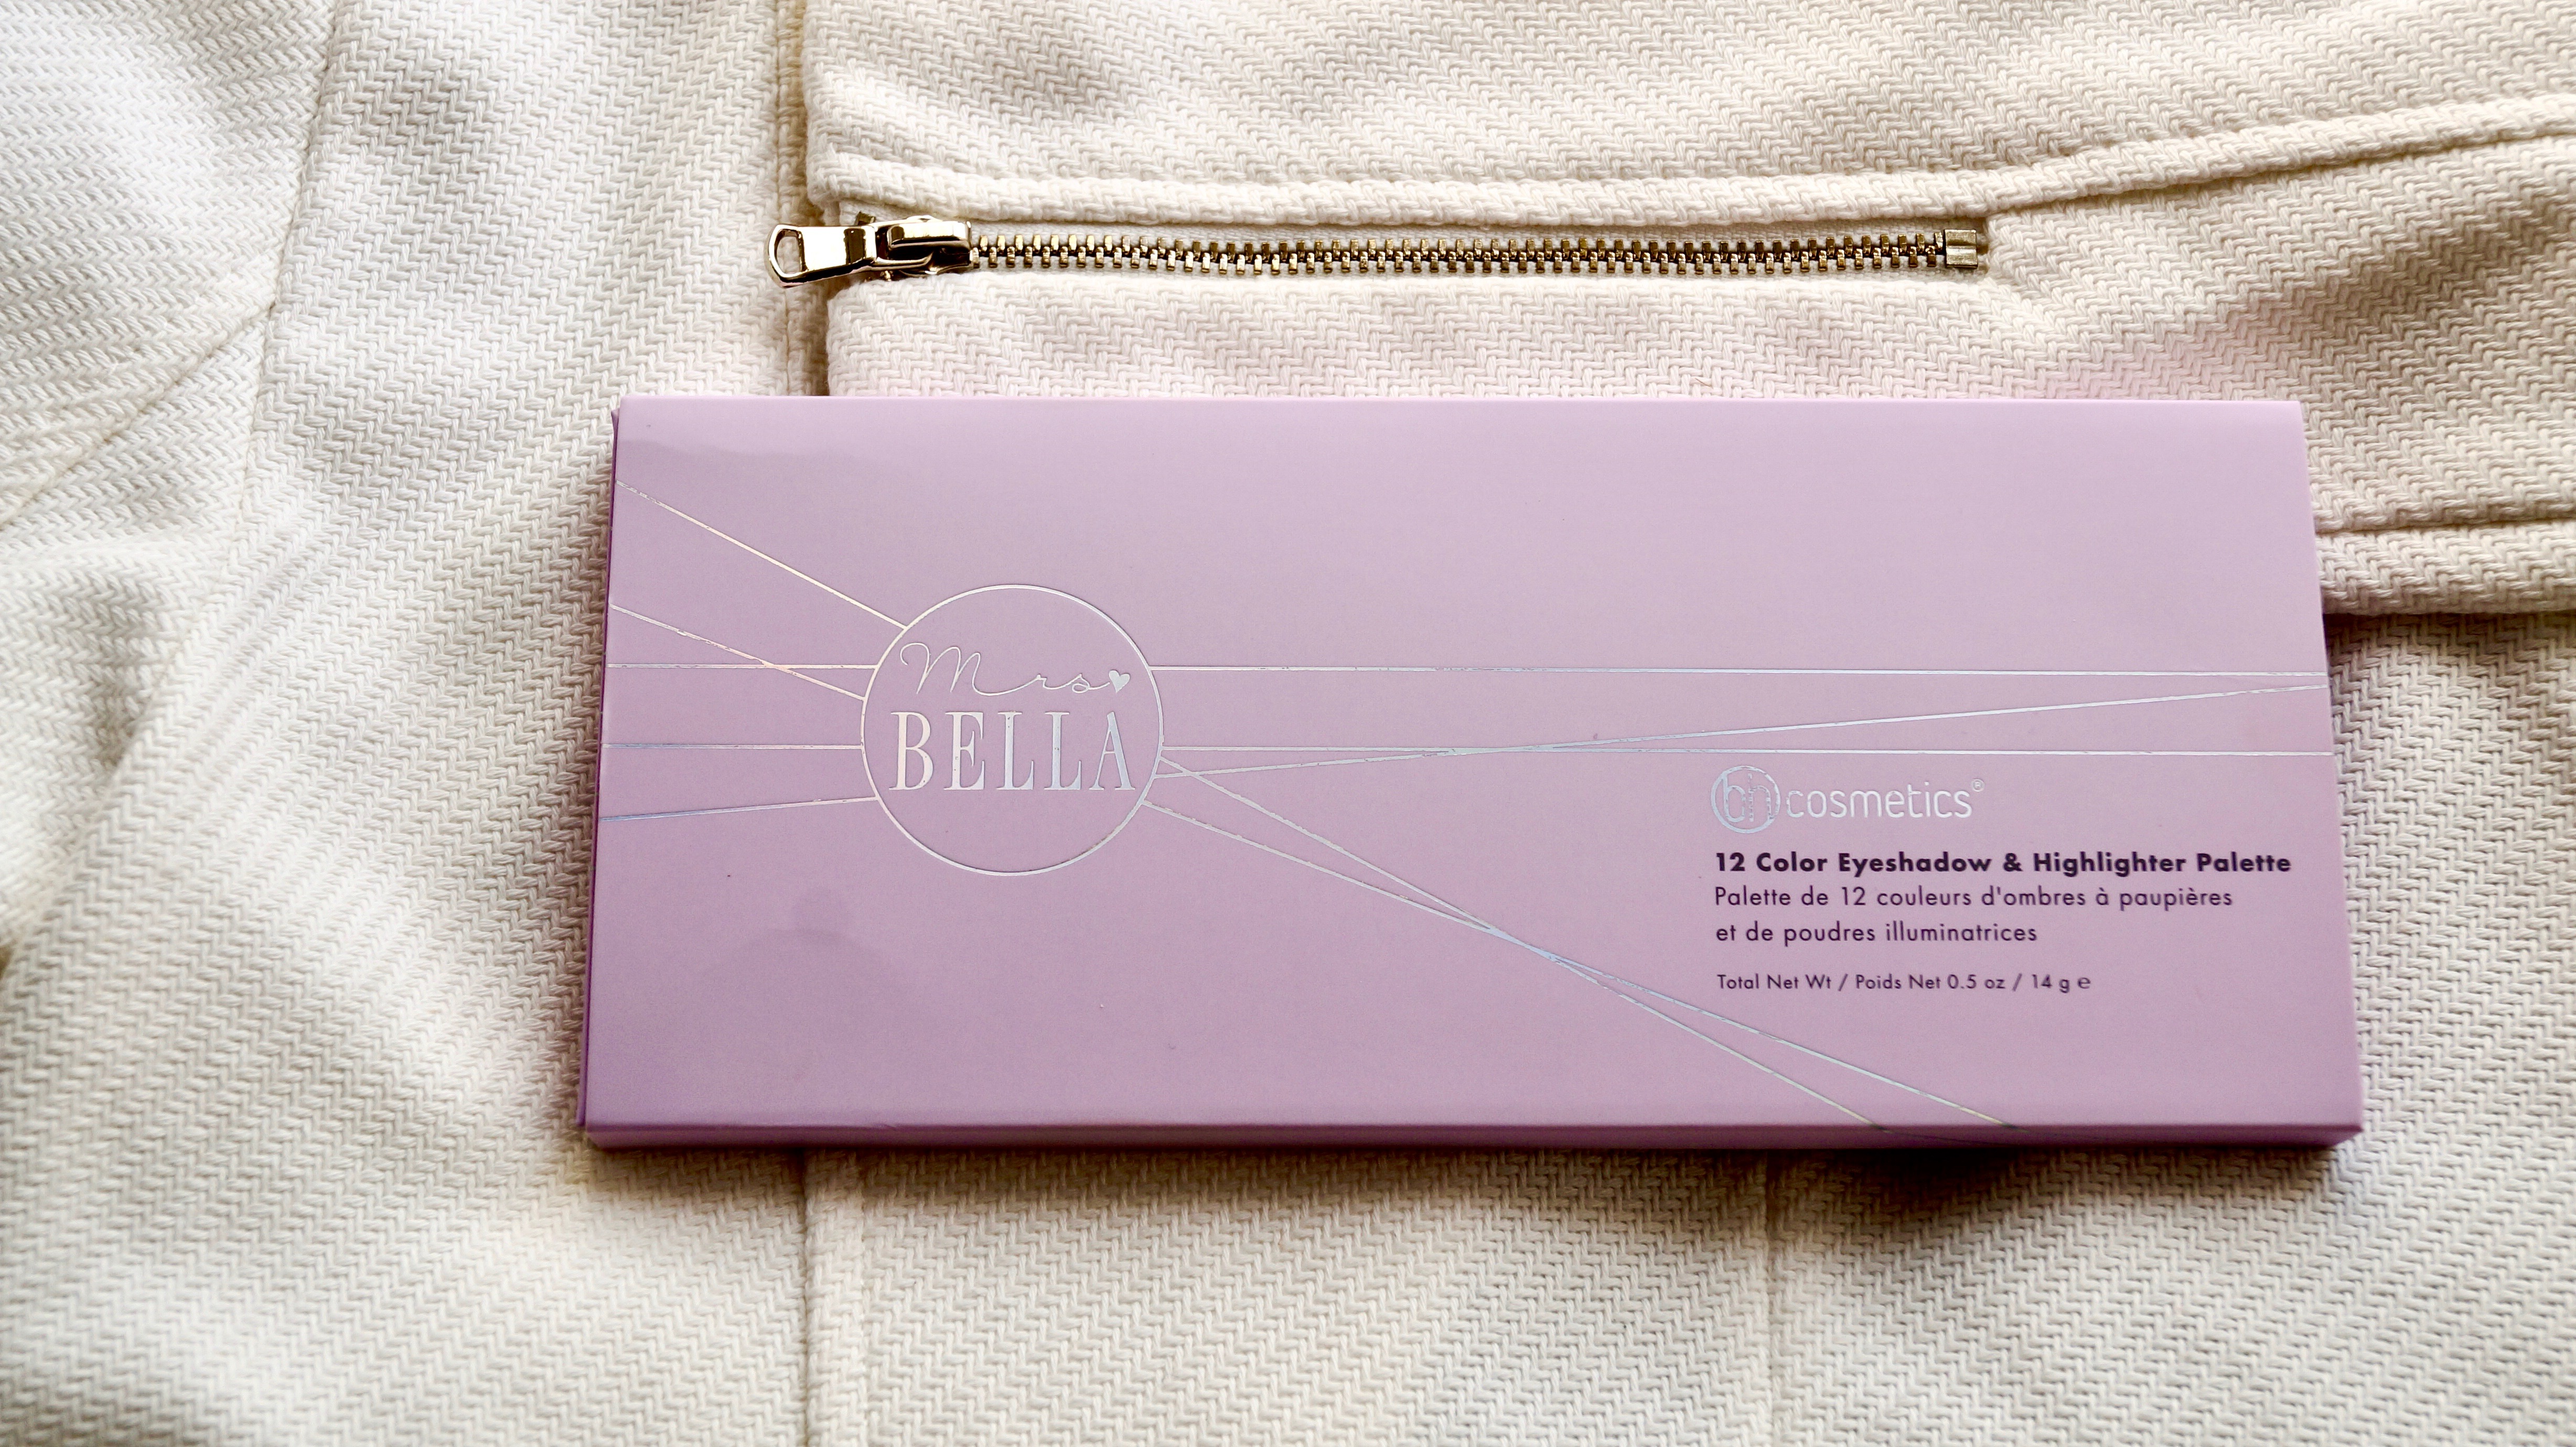 Mrs. Bella bh cosmetics review